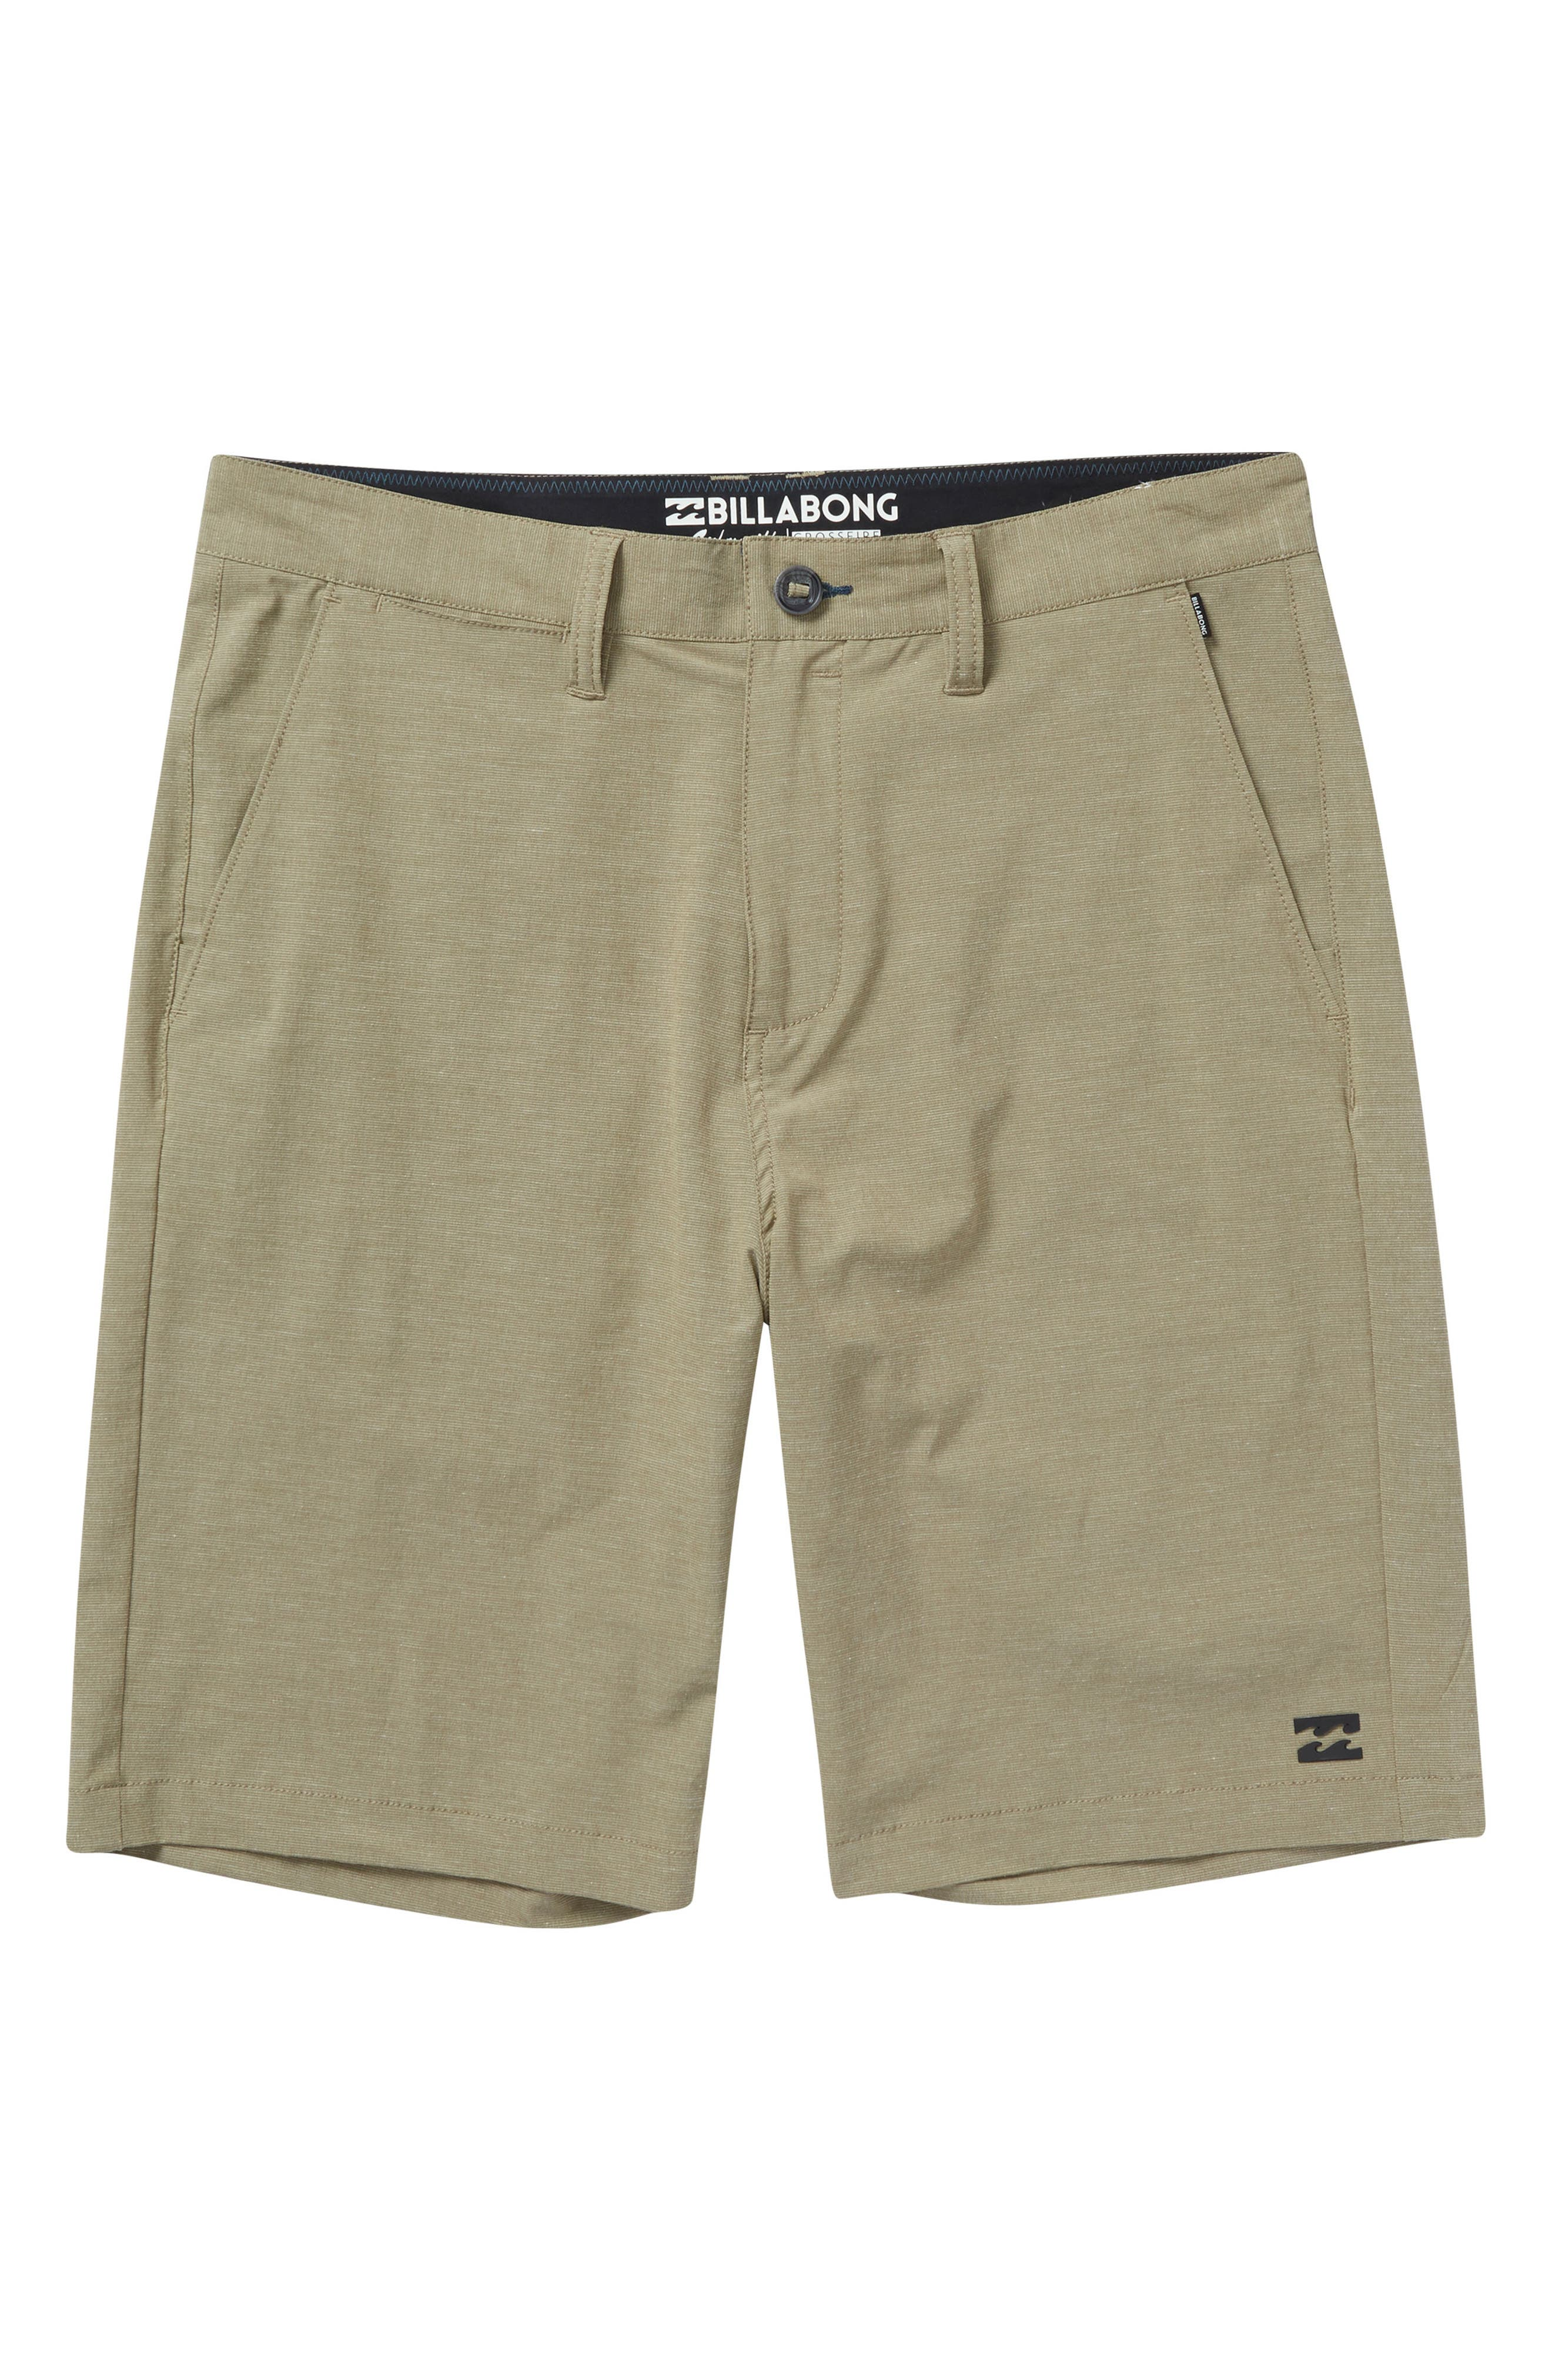 Billabong Crossfire X Hybrid Shorts (Toddler Boys, Little Boys & Big Boys)